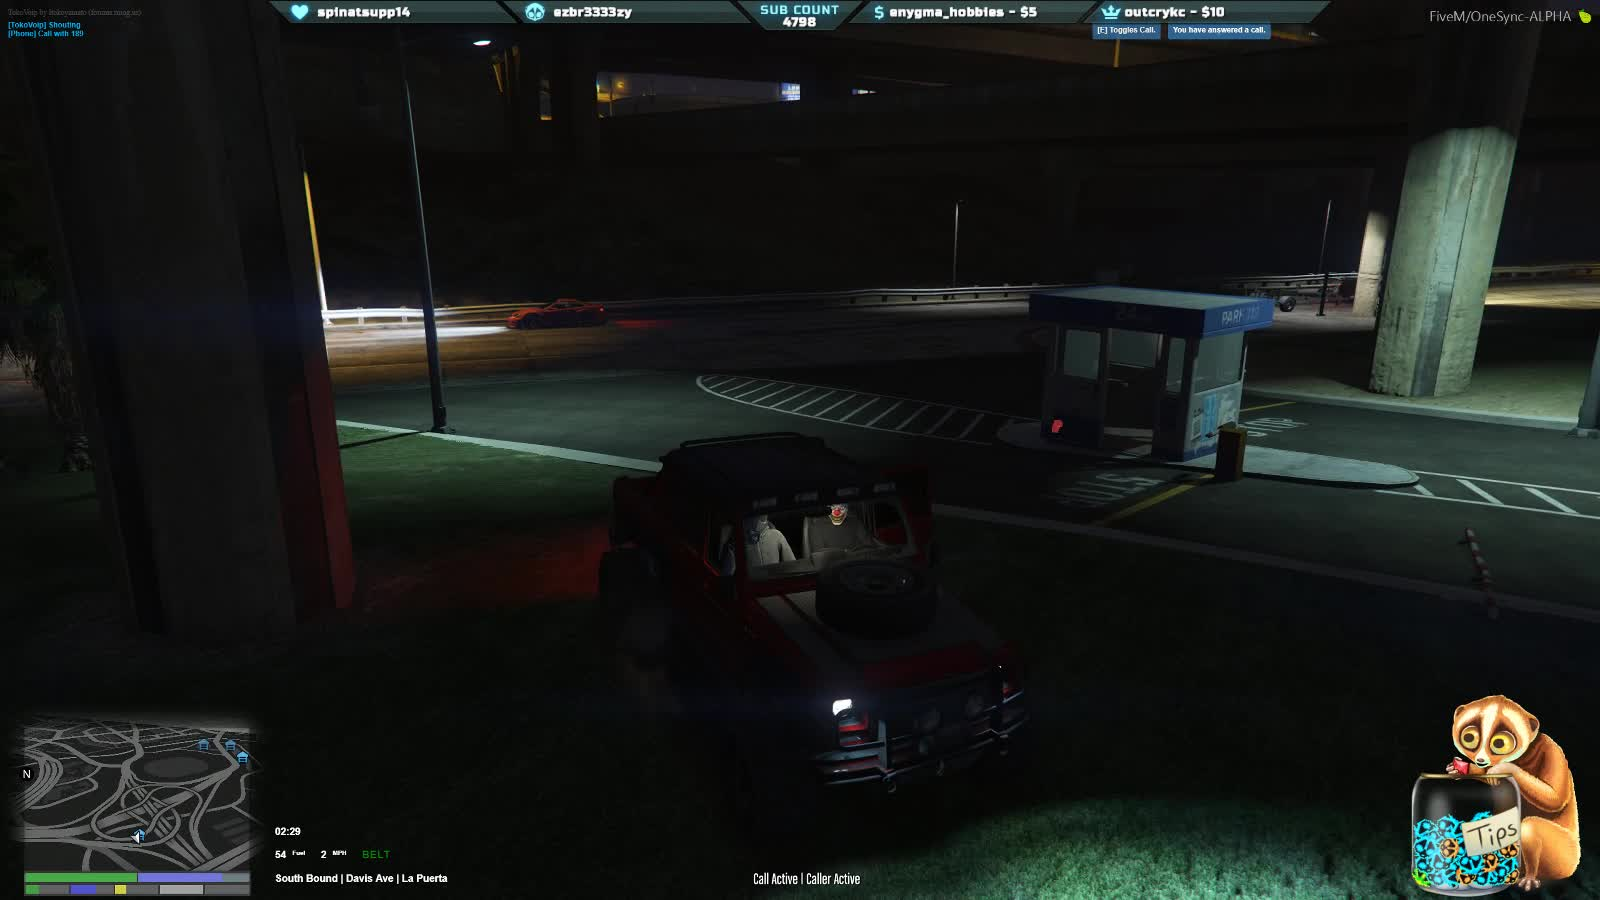 Kyle - Pimp's being phone tapped - Twitch